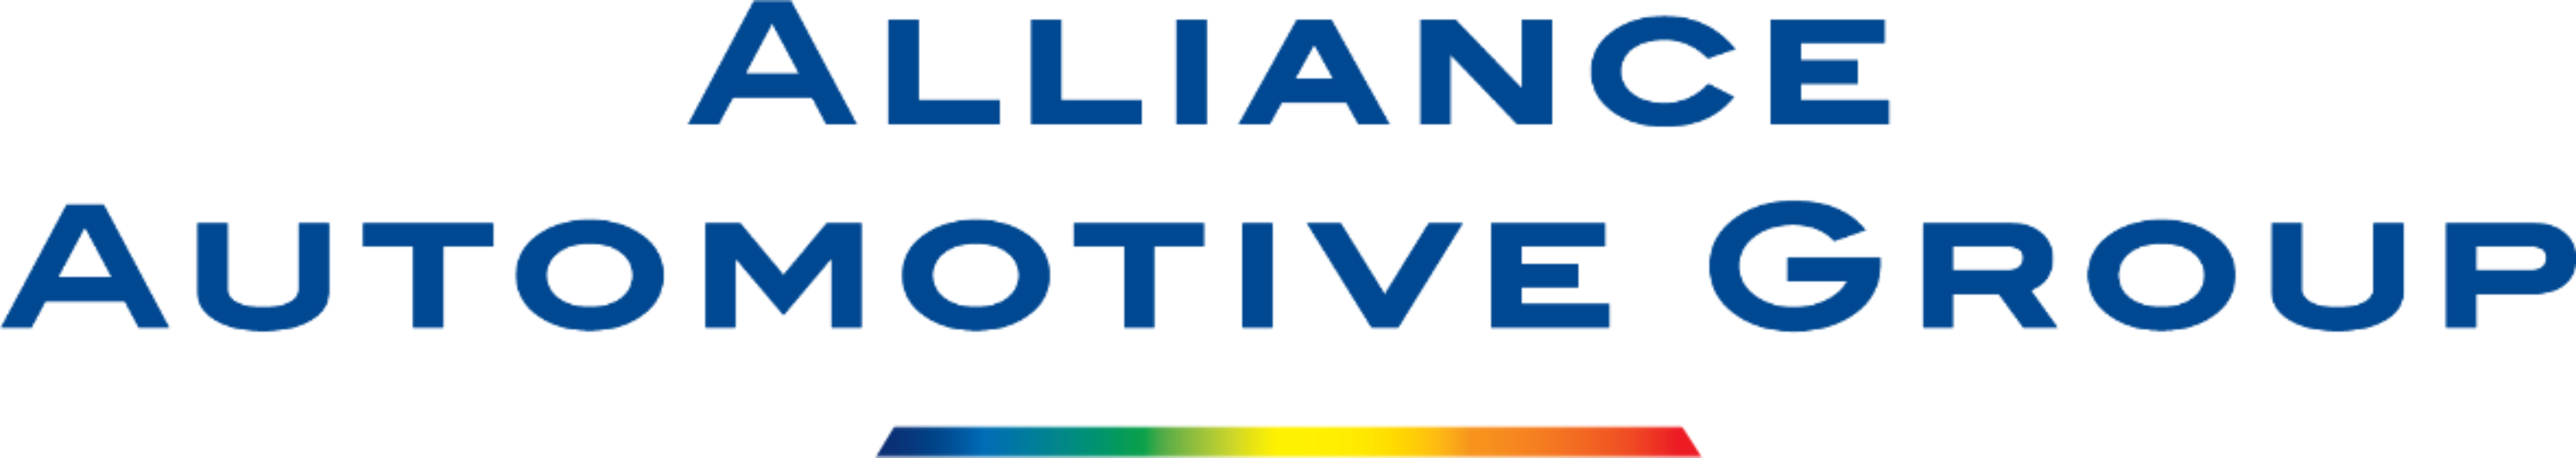 Alliance Automotive Group Benelux B.V. (PartsPoint Group) logo